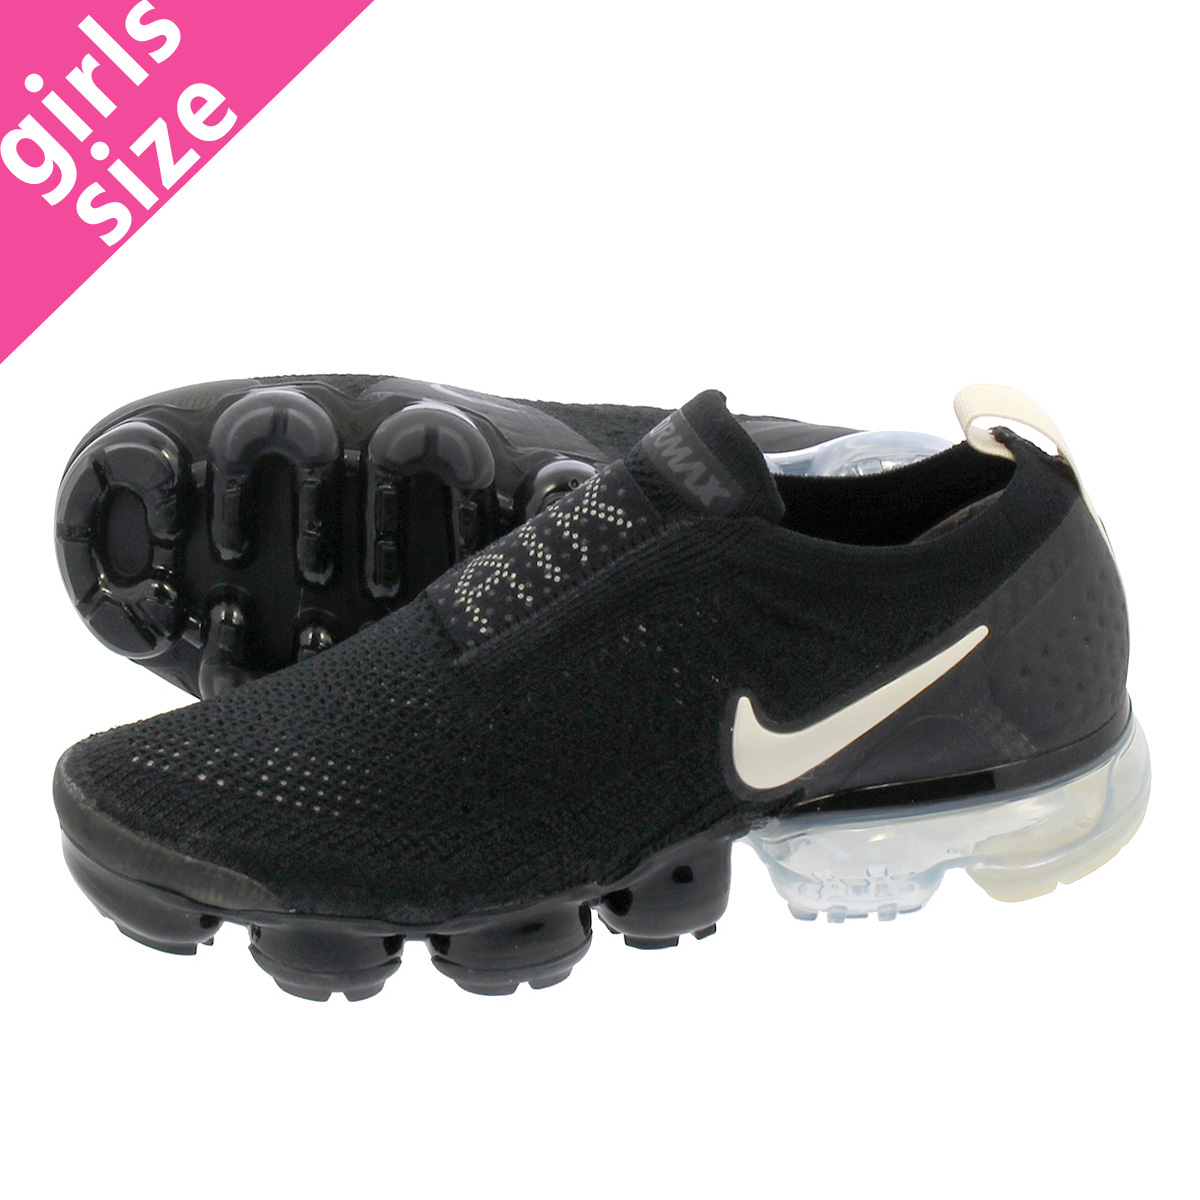 a394bec98fe0 NIKE WMNS AIR VAPORMAX FK MOC 2 Nike women air vapor max mock 2 BLACK LIGHT  CREAM WHITE THUNDER GREY aj6599-002